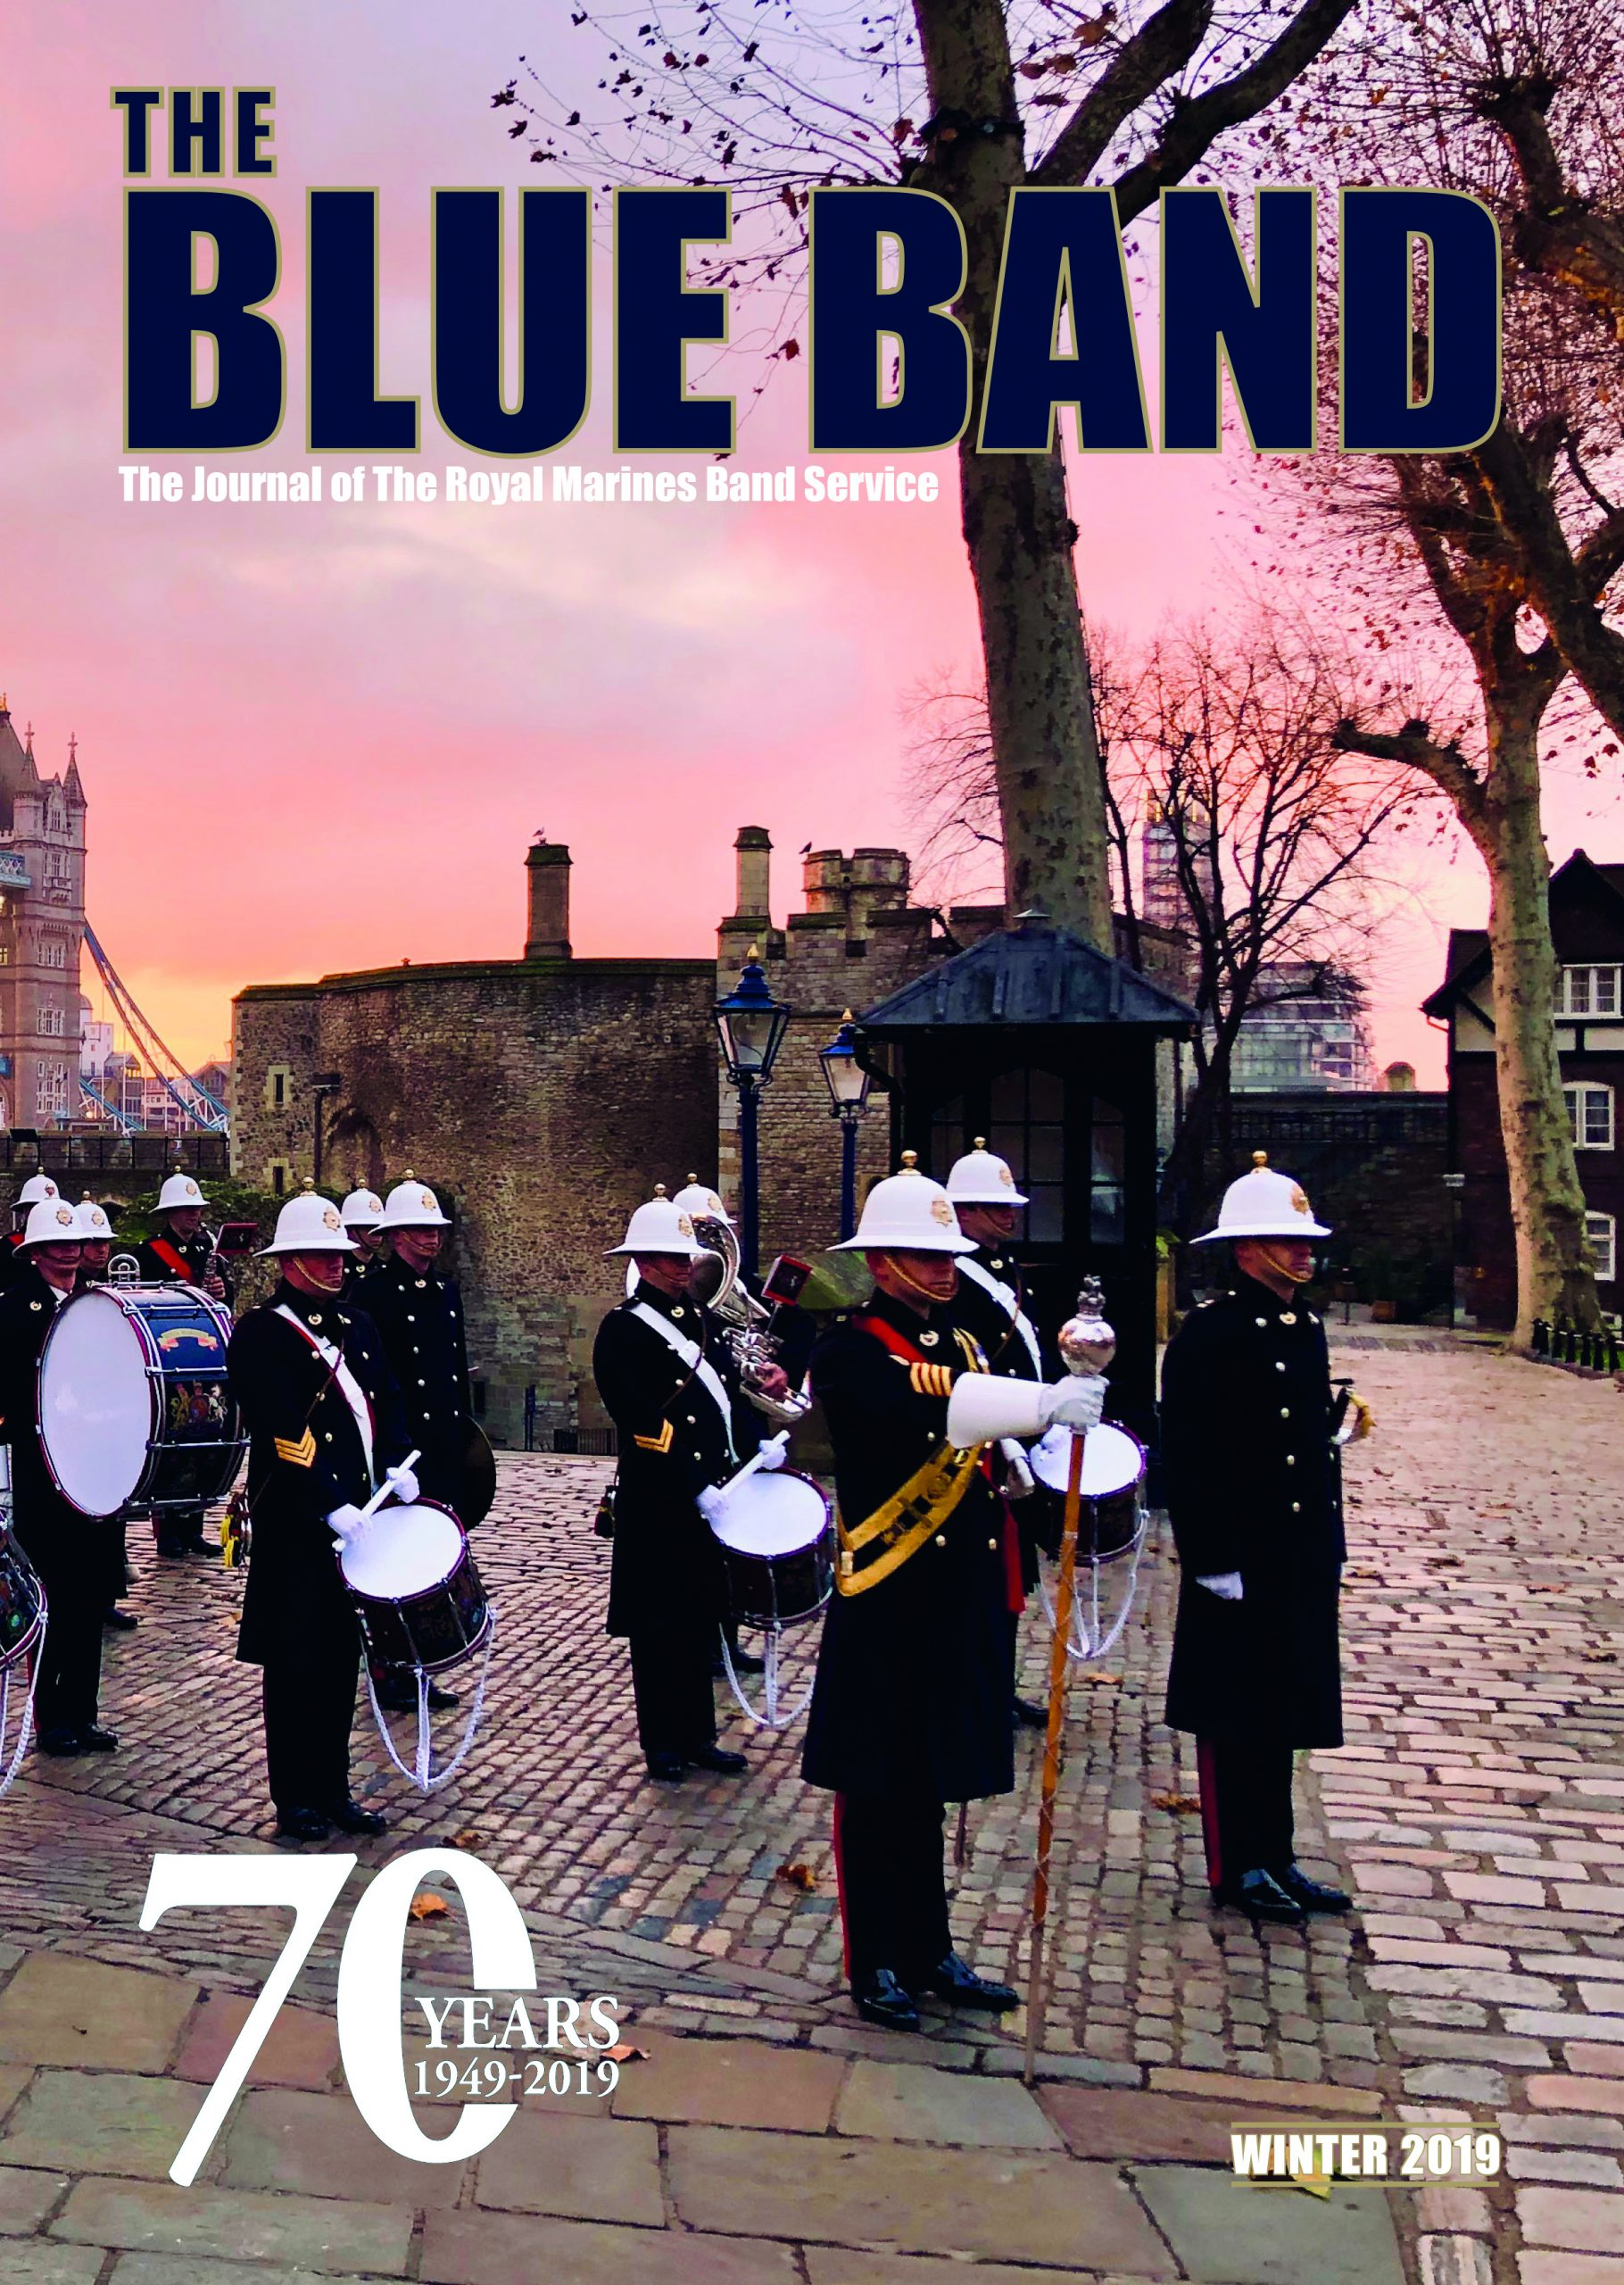 The Blue Band Magazine - The Journal of The Royal Marines Band Service